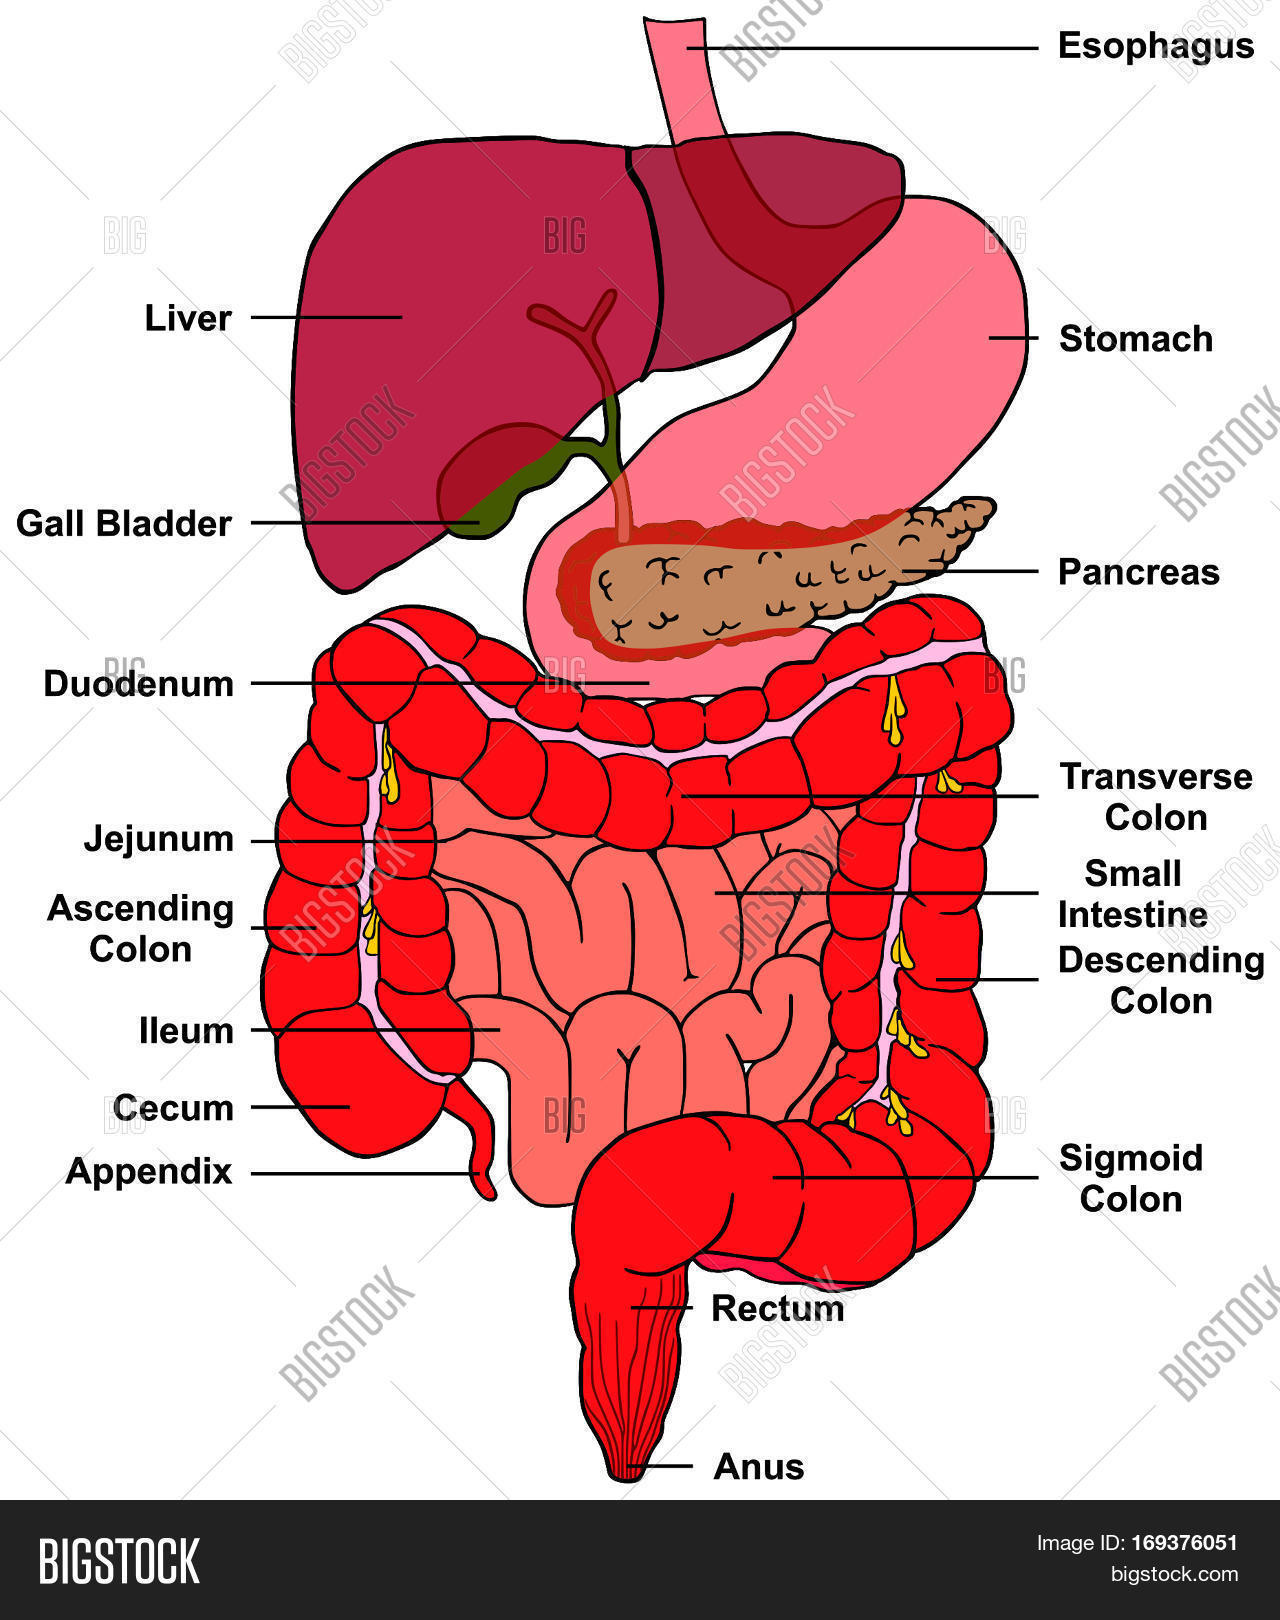 Digestive System Human Image & Photo (Free Trial) | Bigstock